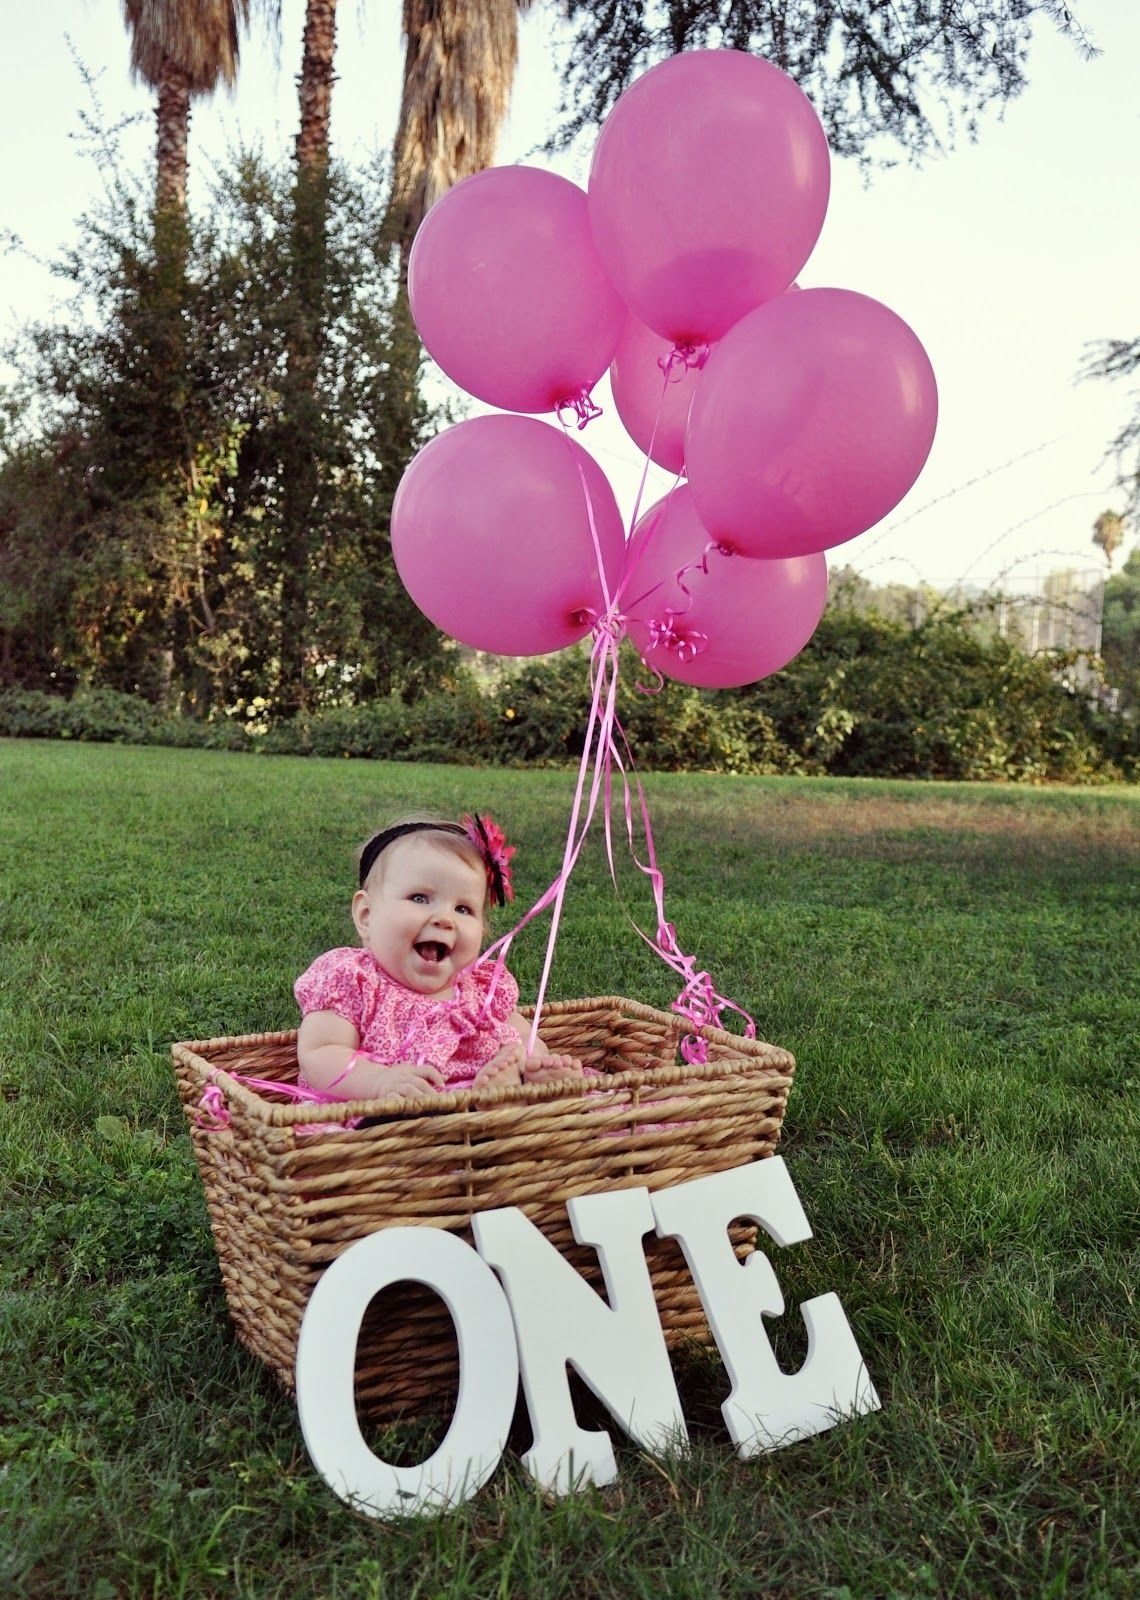 10 Cute One Year Old Birthday Ideas one year old photo shoot although there will probably be snow on 1 2020